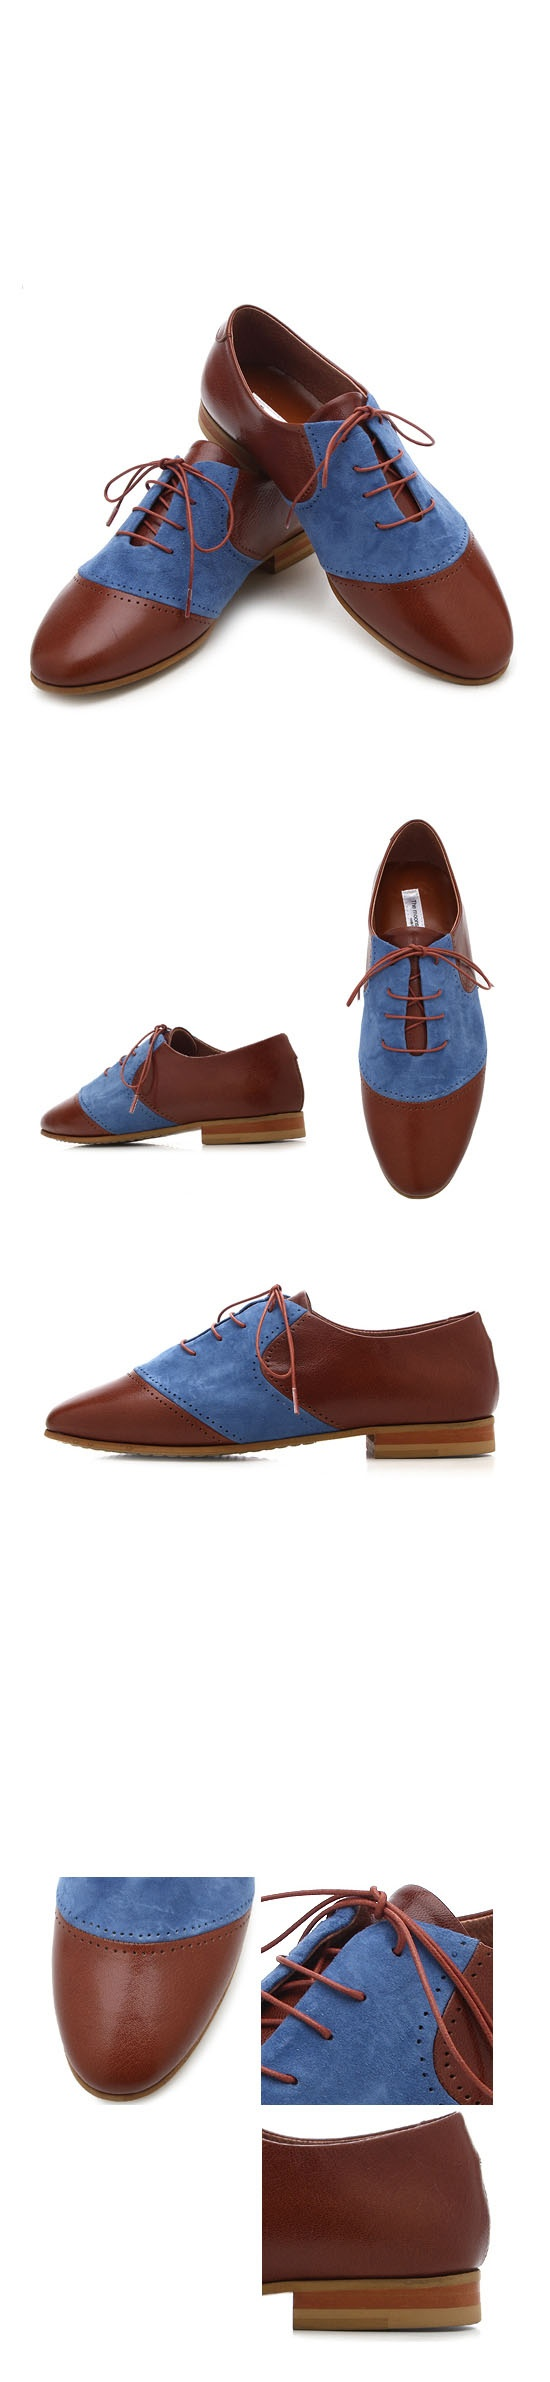 Shoes :: Charming Contrast Derby Flat-Shoes 119 - Mens Fashion Clothing For  An